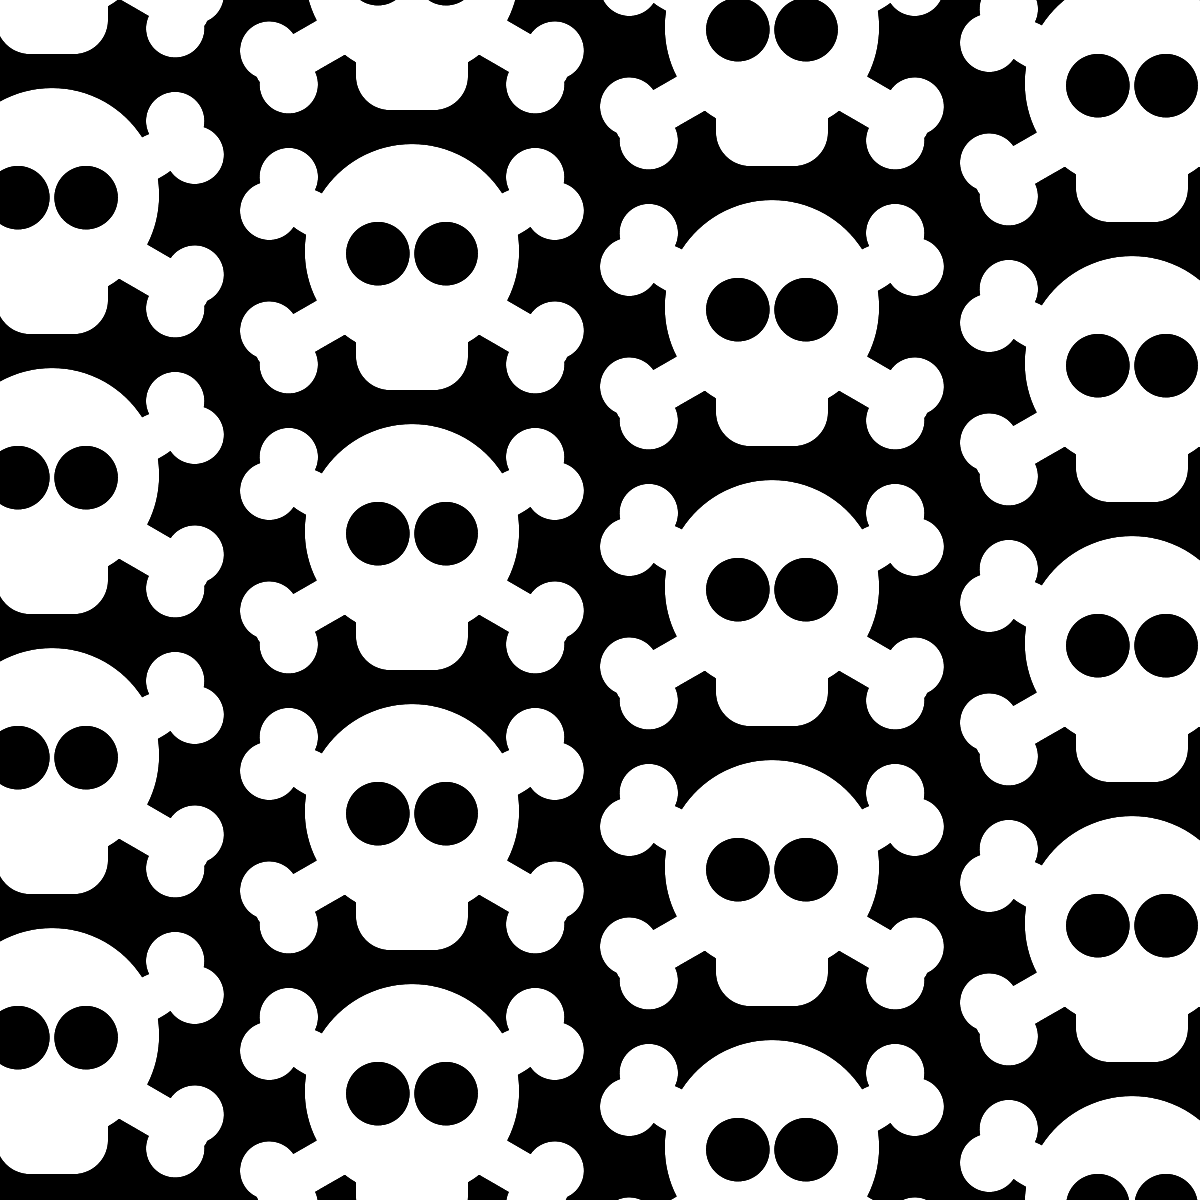 Pirate Skull And Bones Pattern Pirate Digital Paper With Skulls And Crossbones In White And Black A Paper Craft Projects Digital Paper Pirate Birthday Party